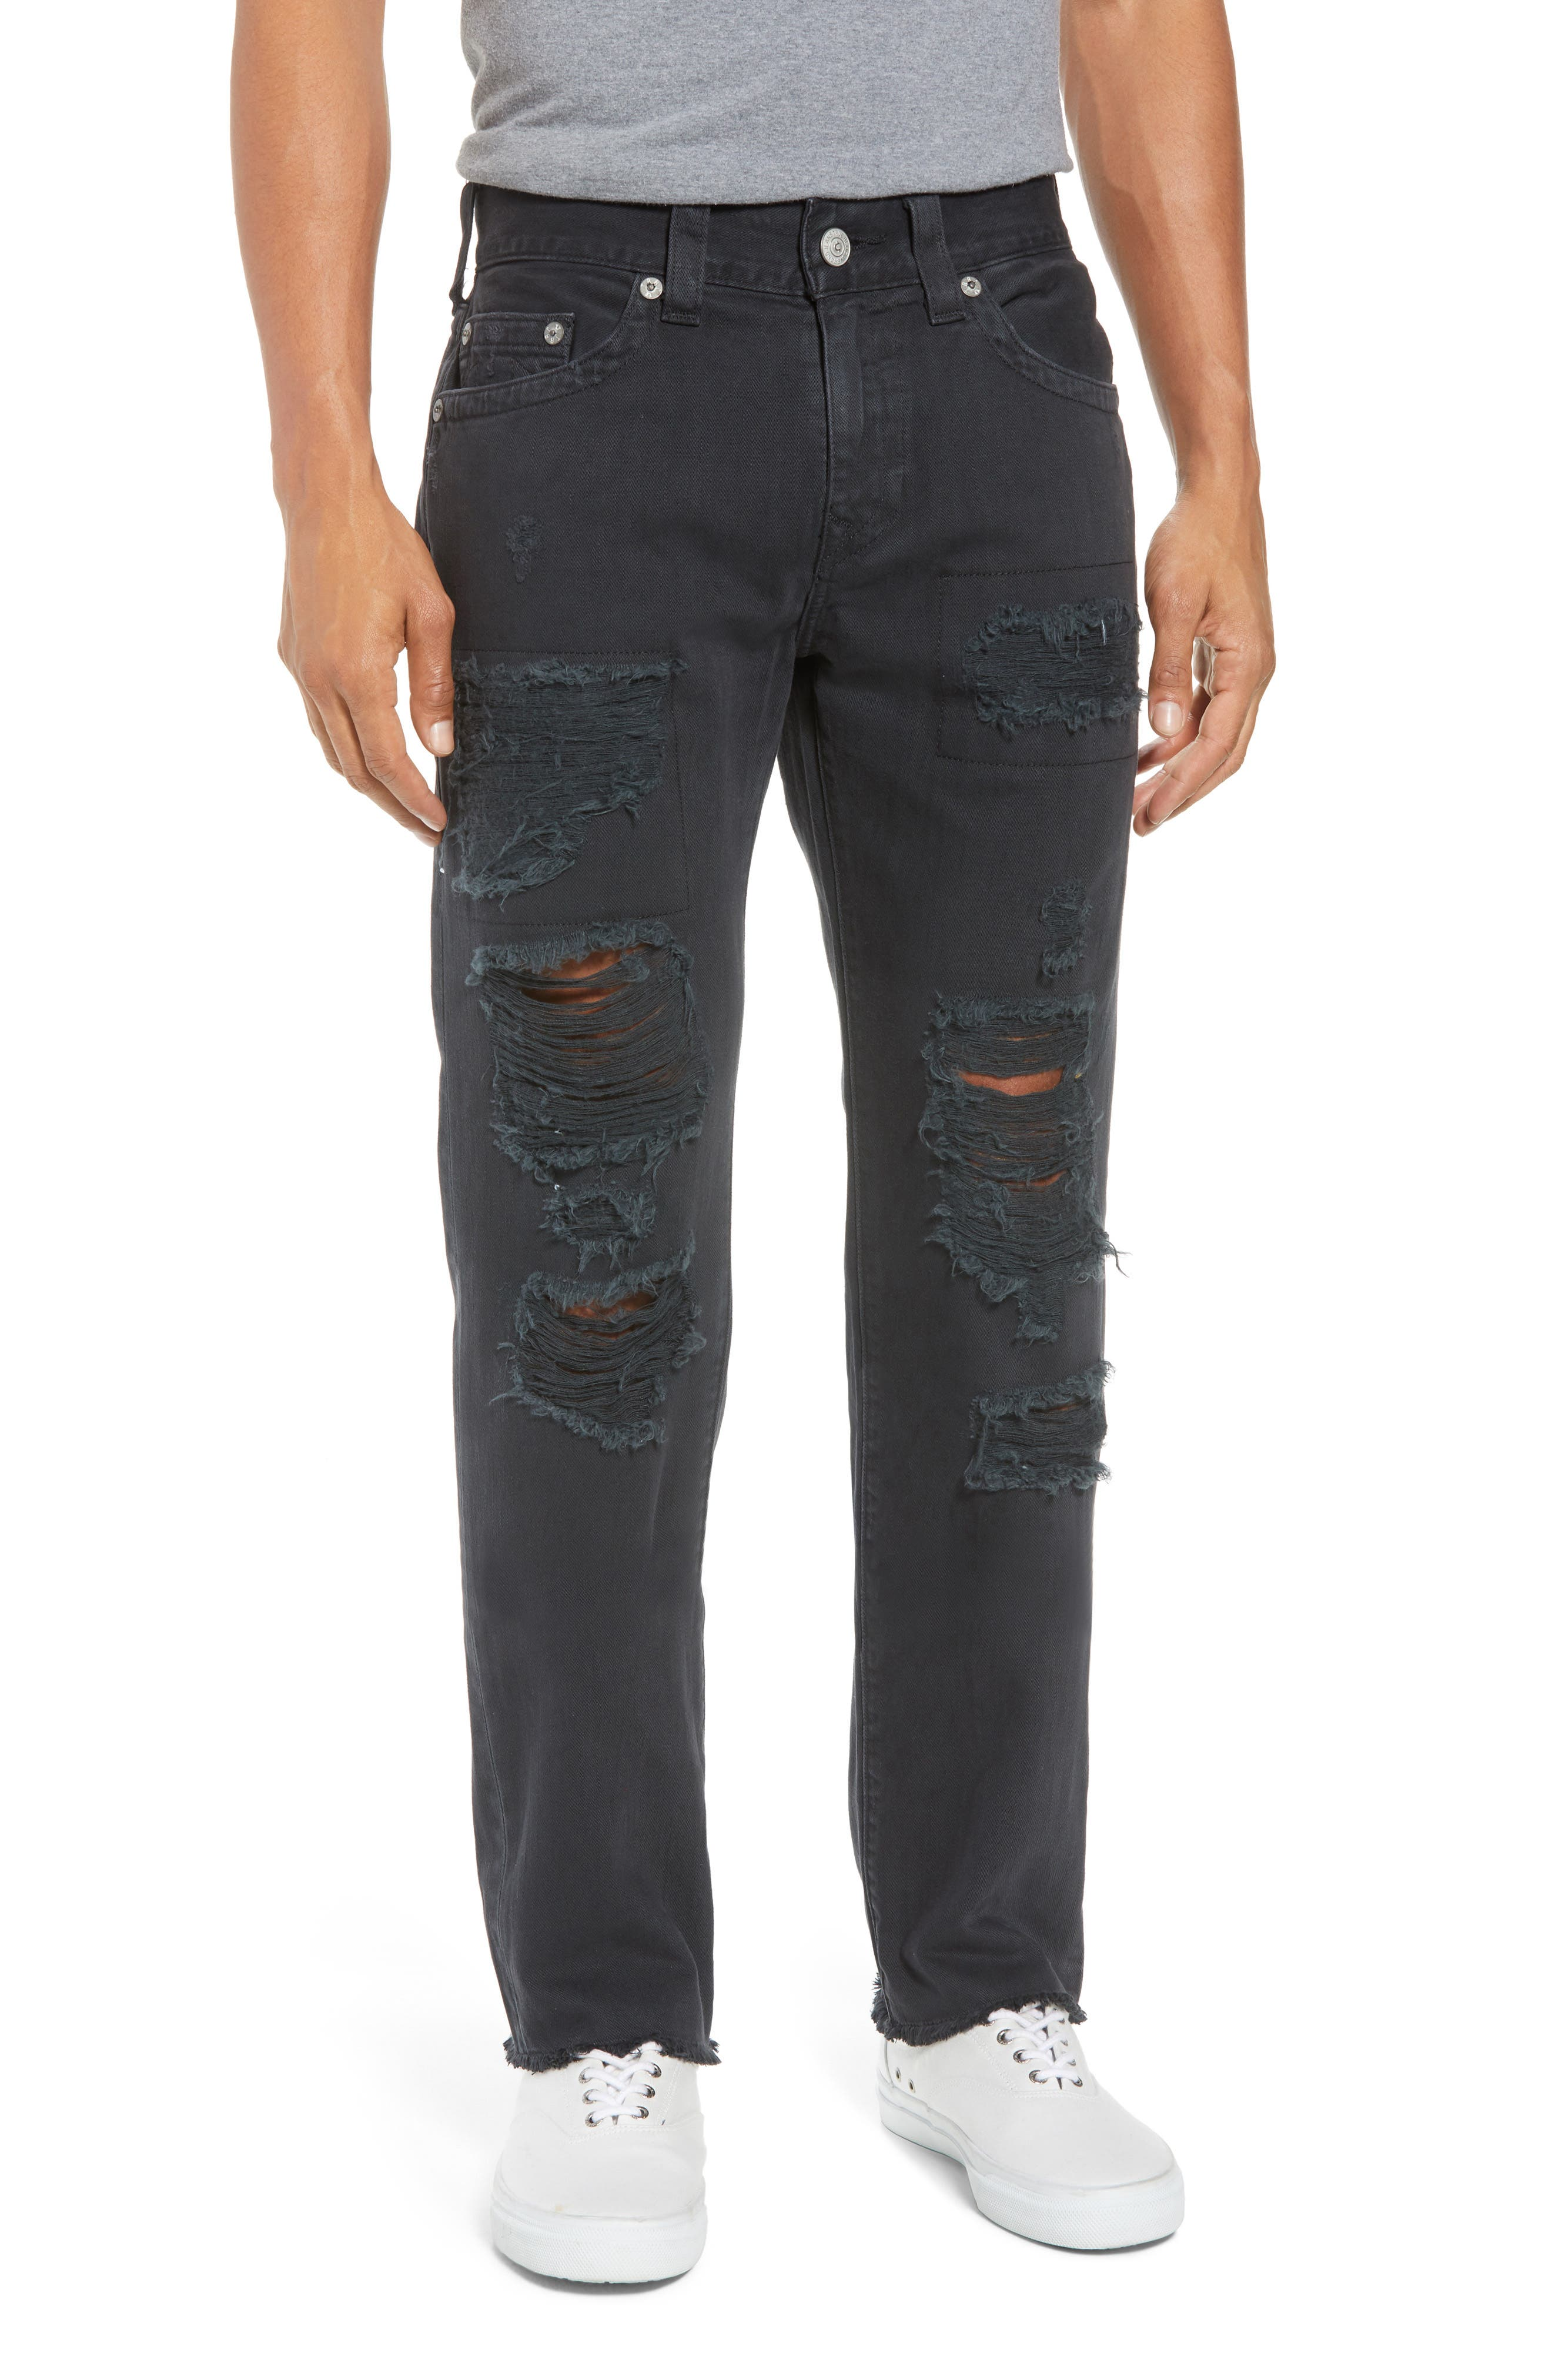 Rocco Skinny Fit Jeans,                             Main thumbnail 1, color,                             Black Volcanic Ash